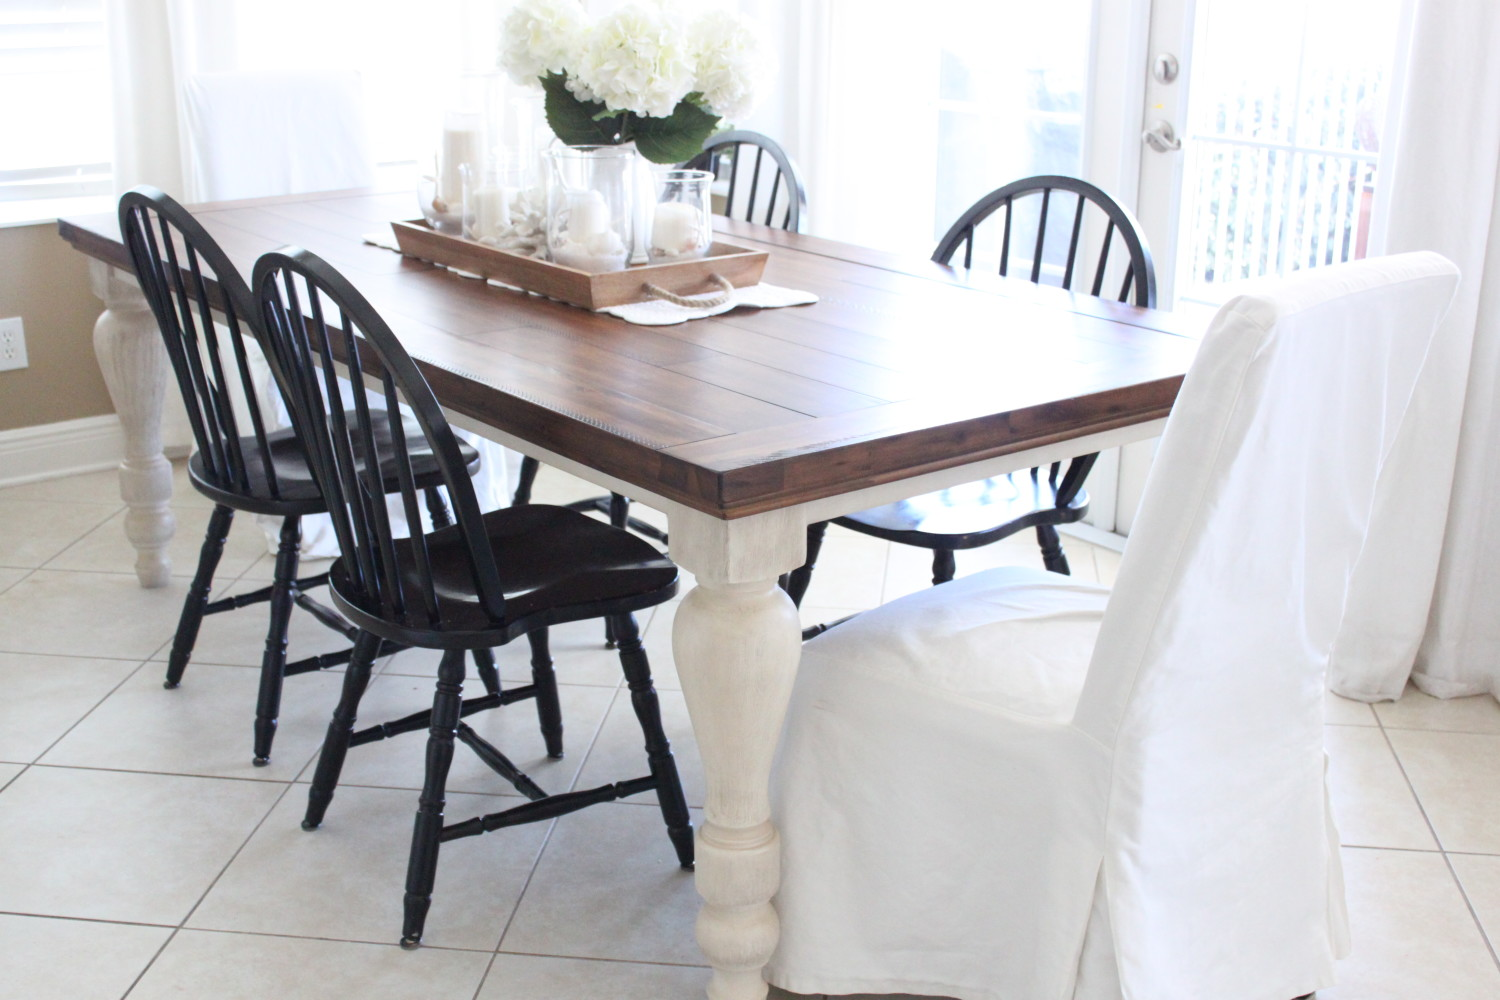 ashley furniture marsilona table archives - starfish cottage